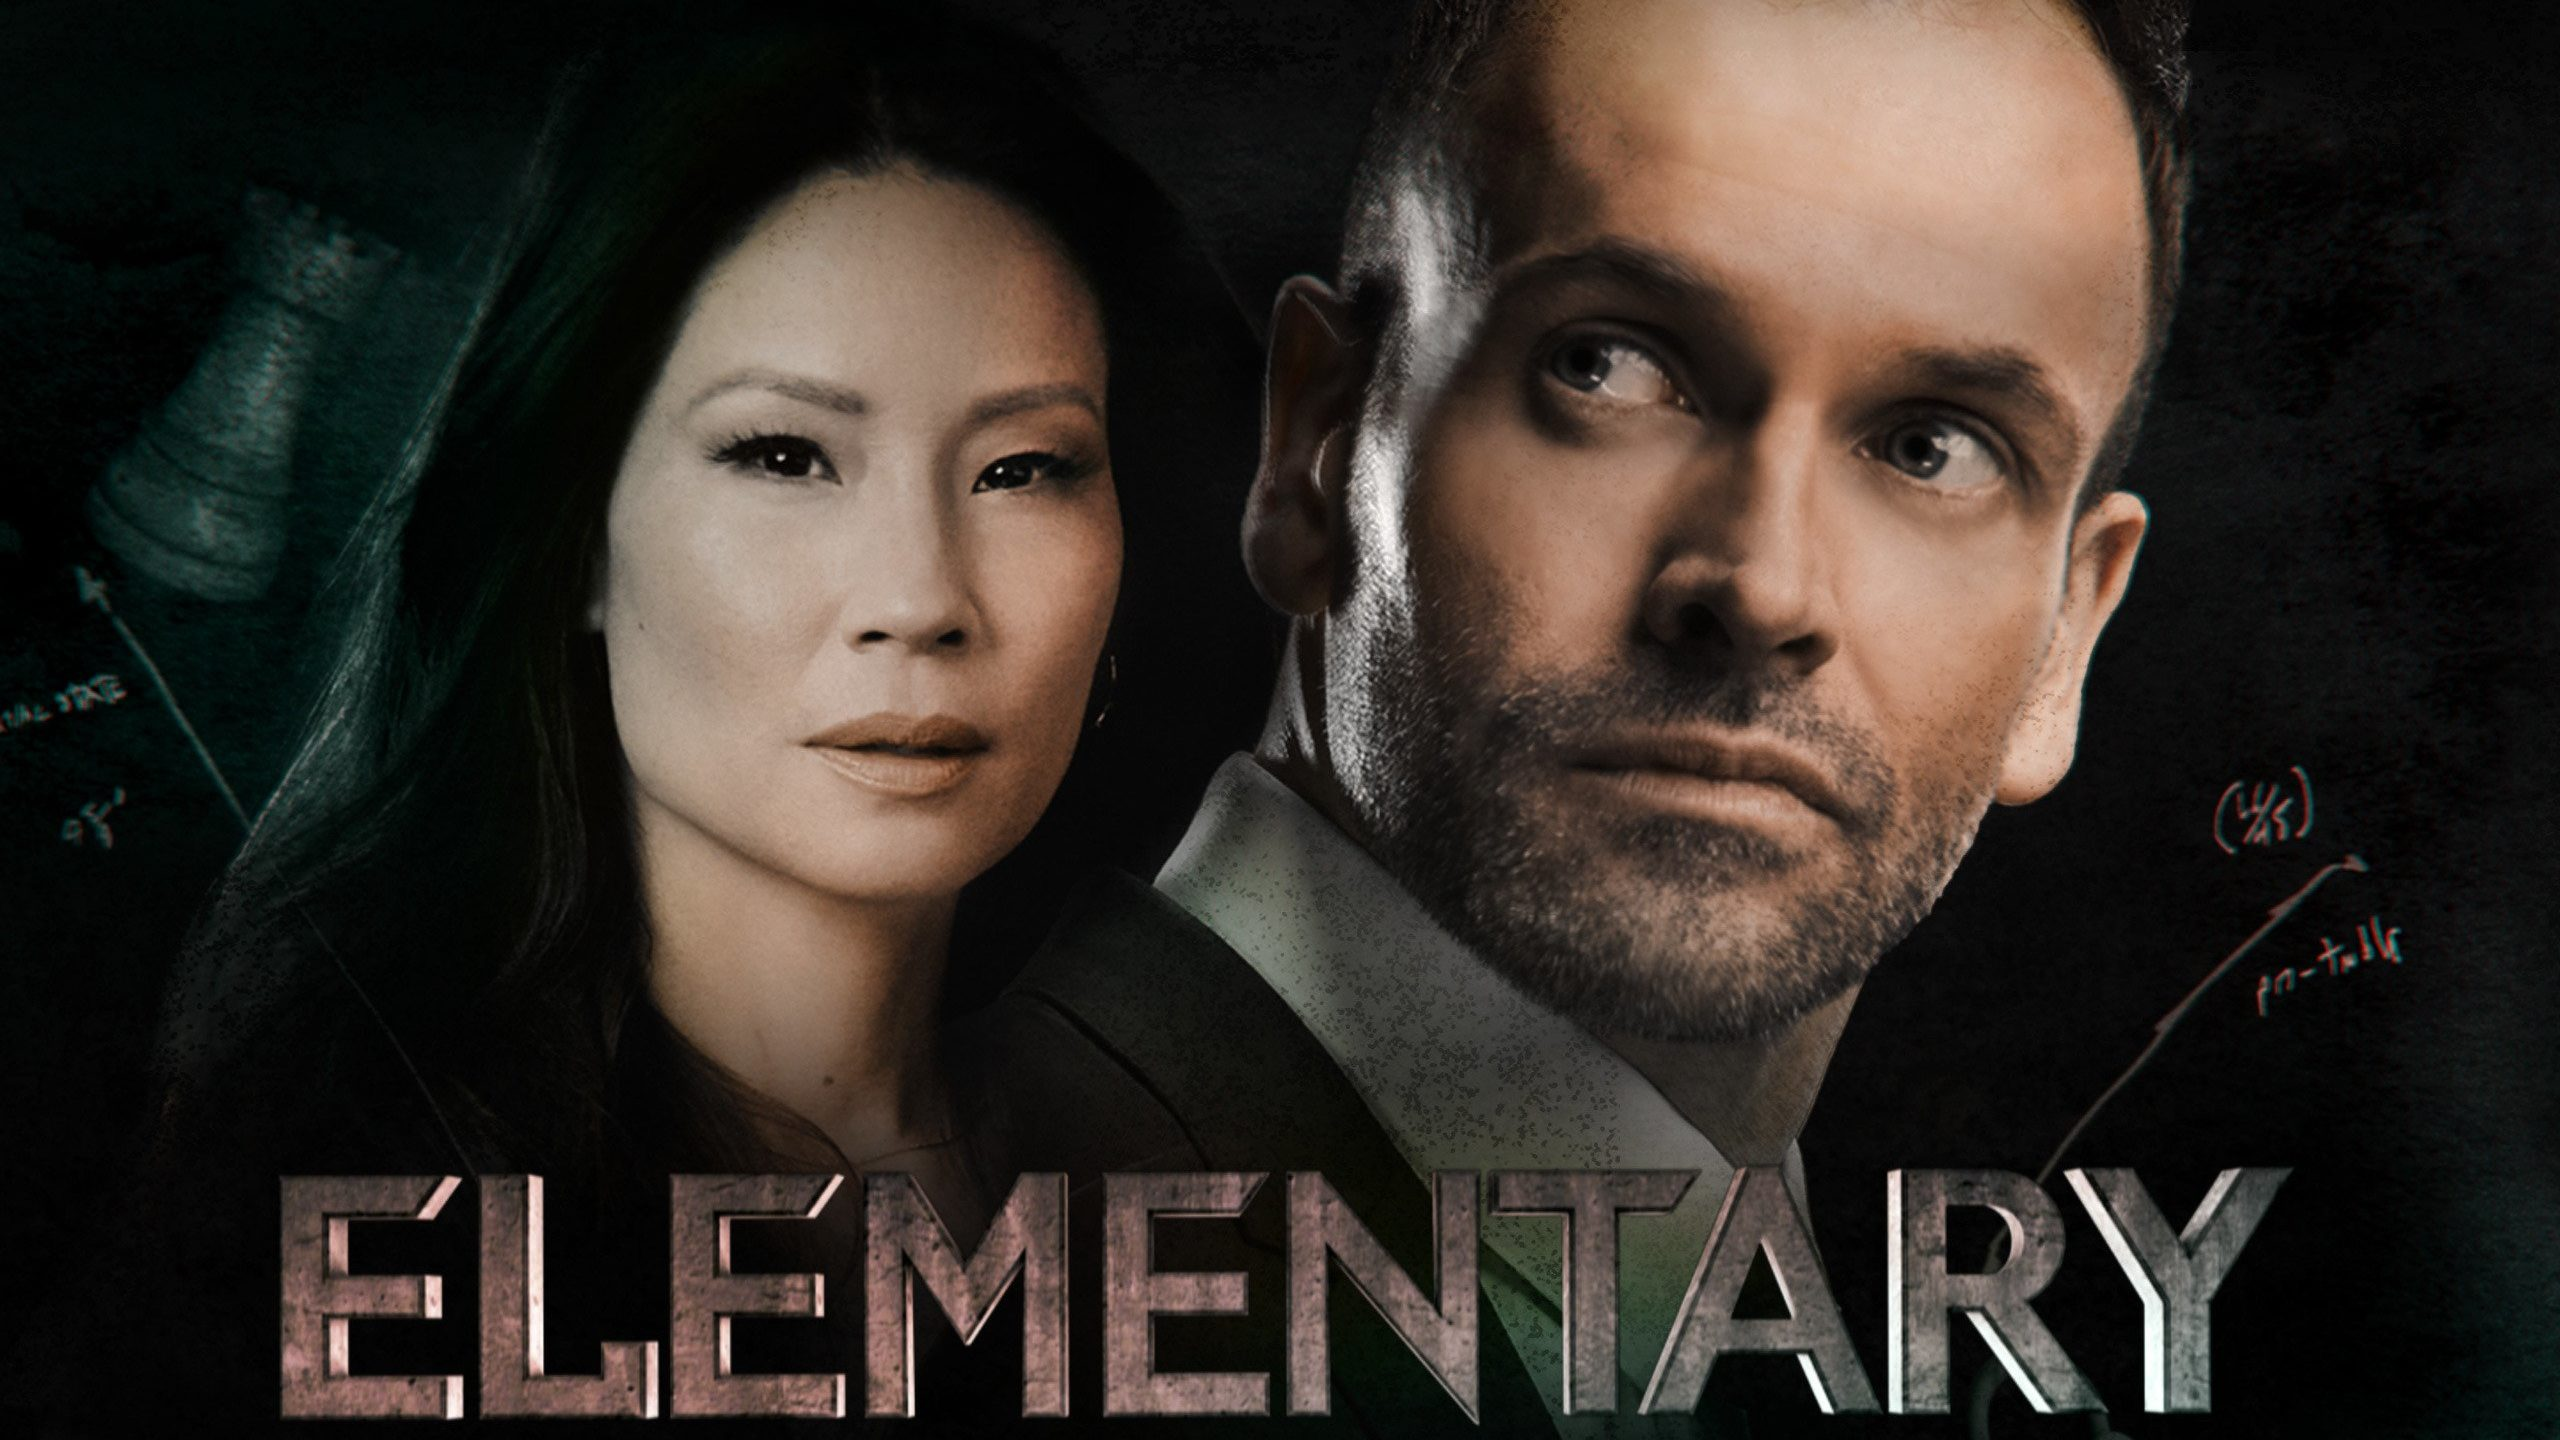 Elementary UK release date air trailer cast plot